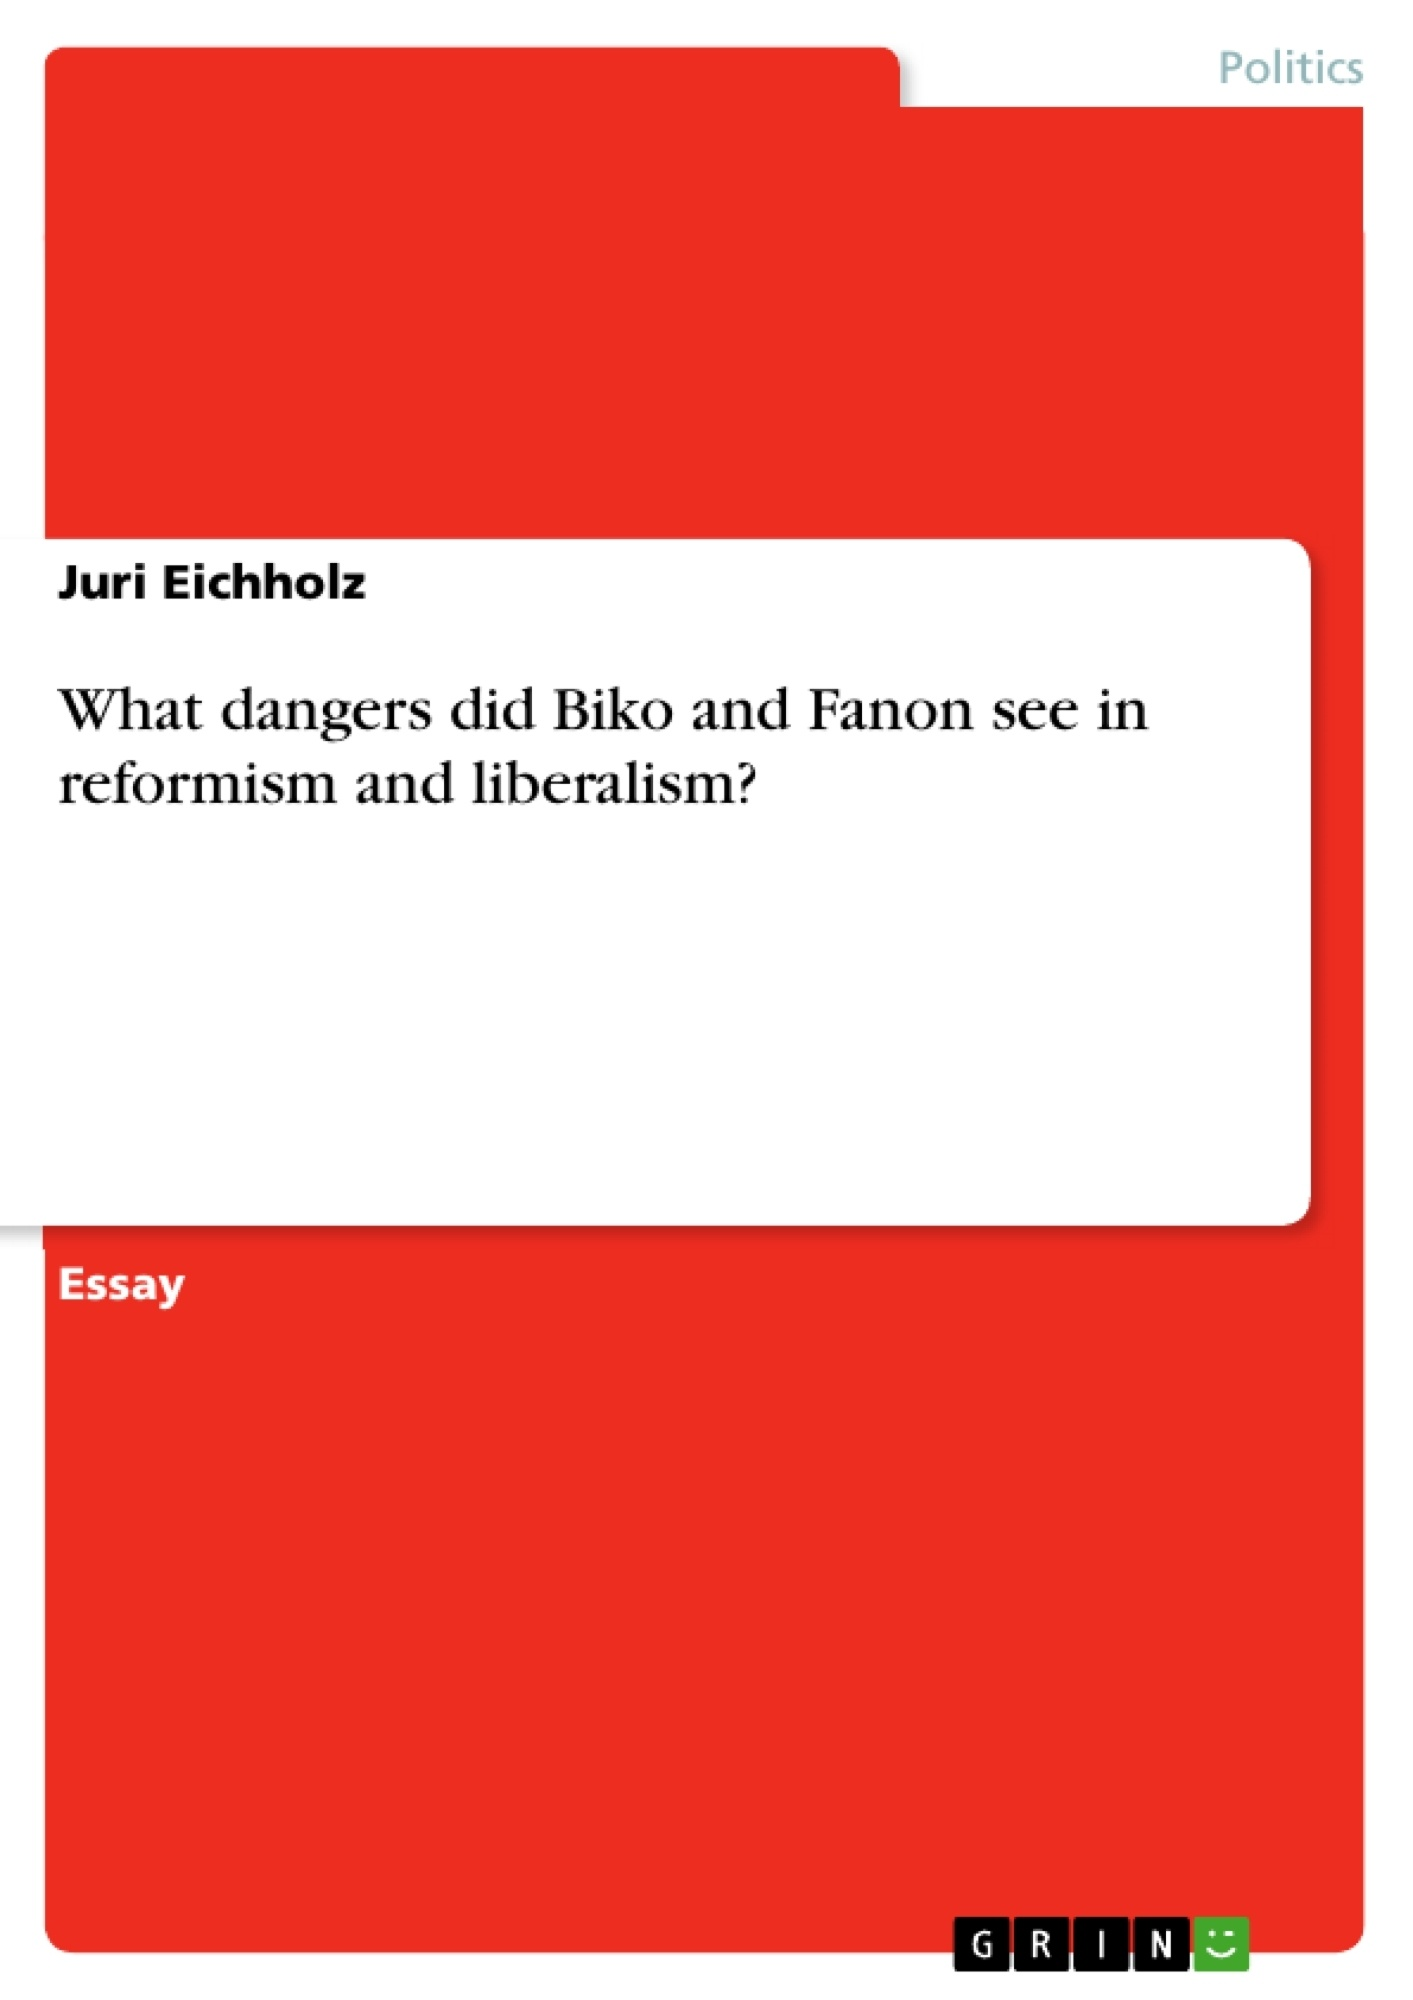 Title: What dangers did Biko and Fanon see in reformism and liberalism?